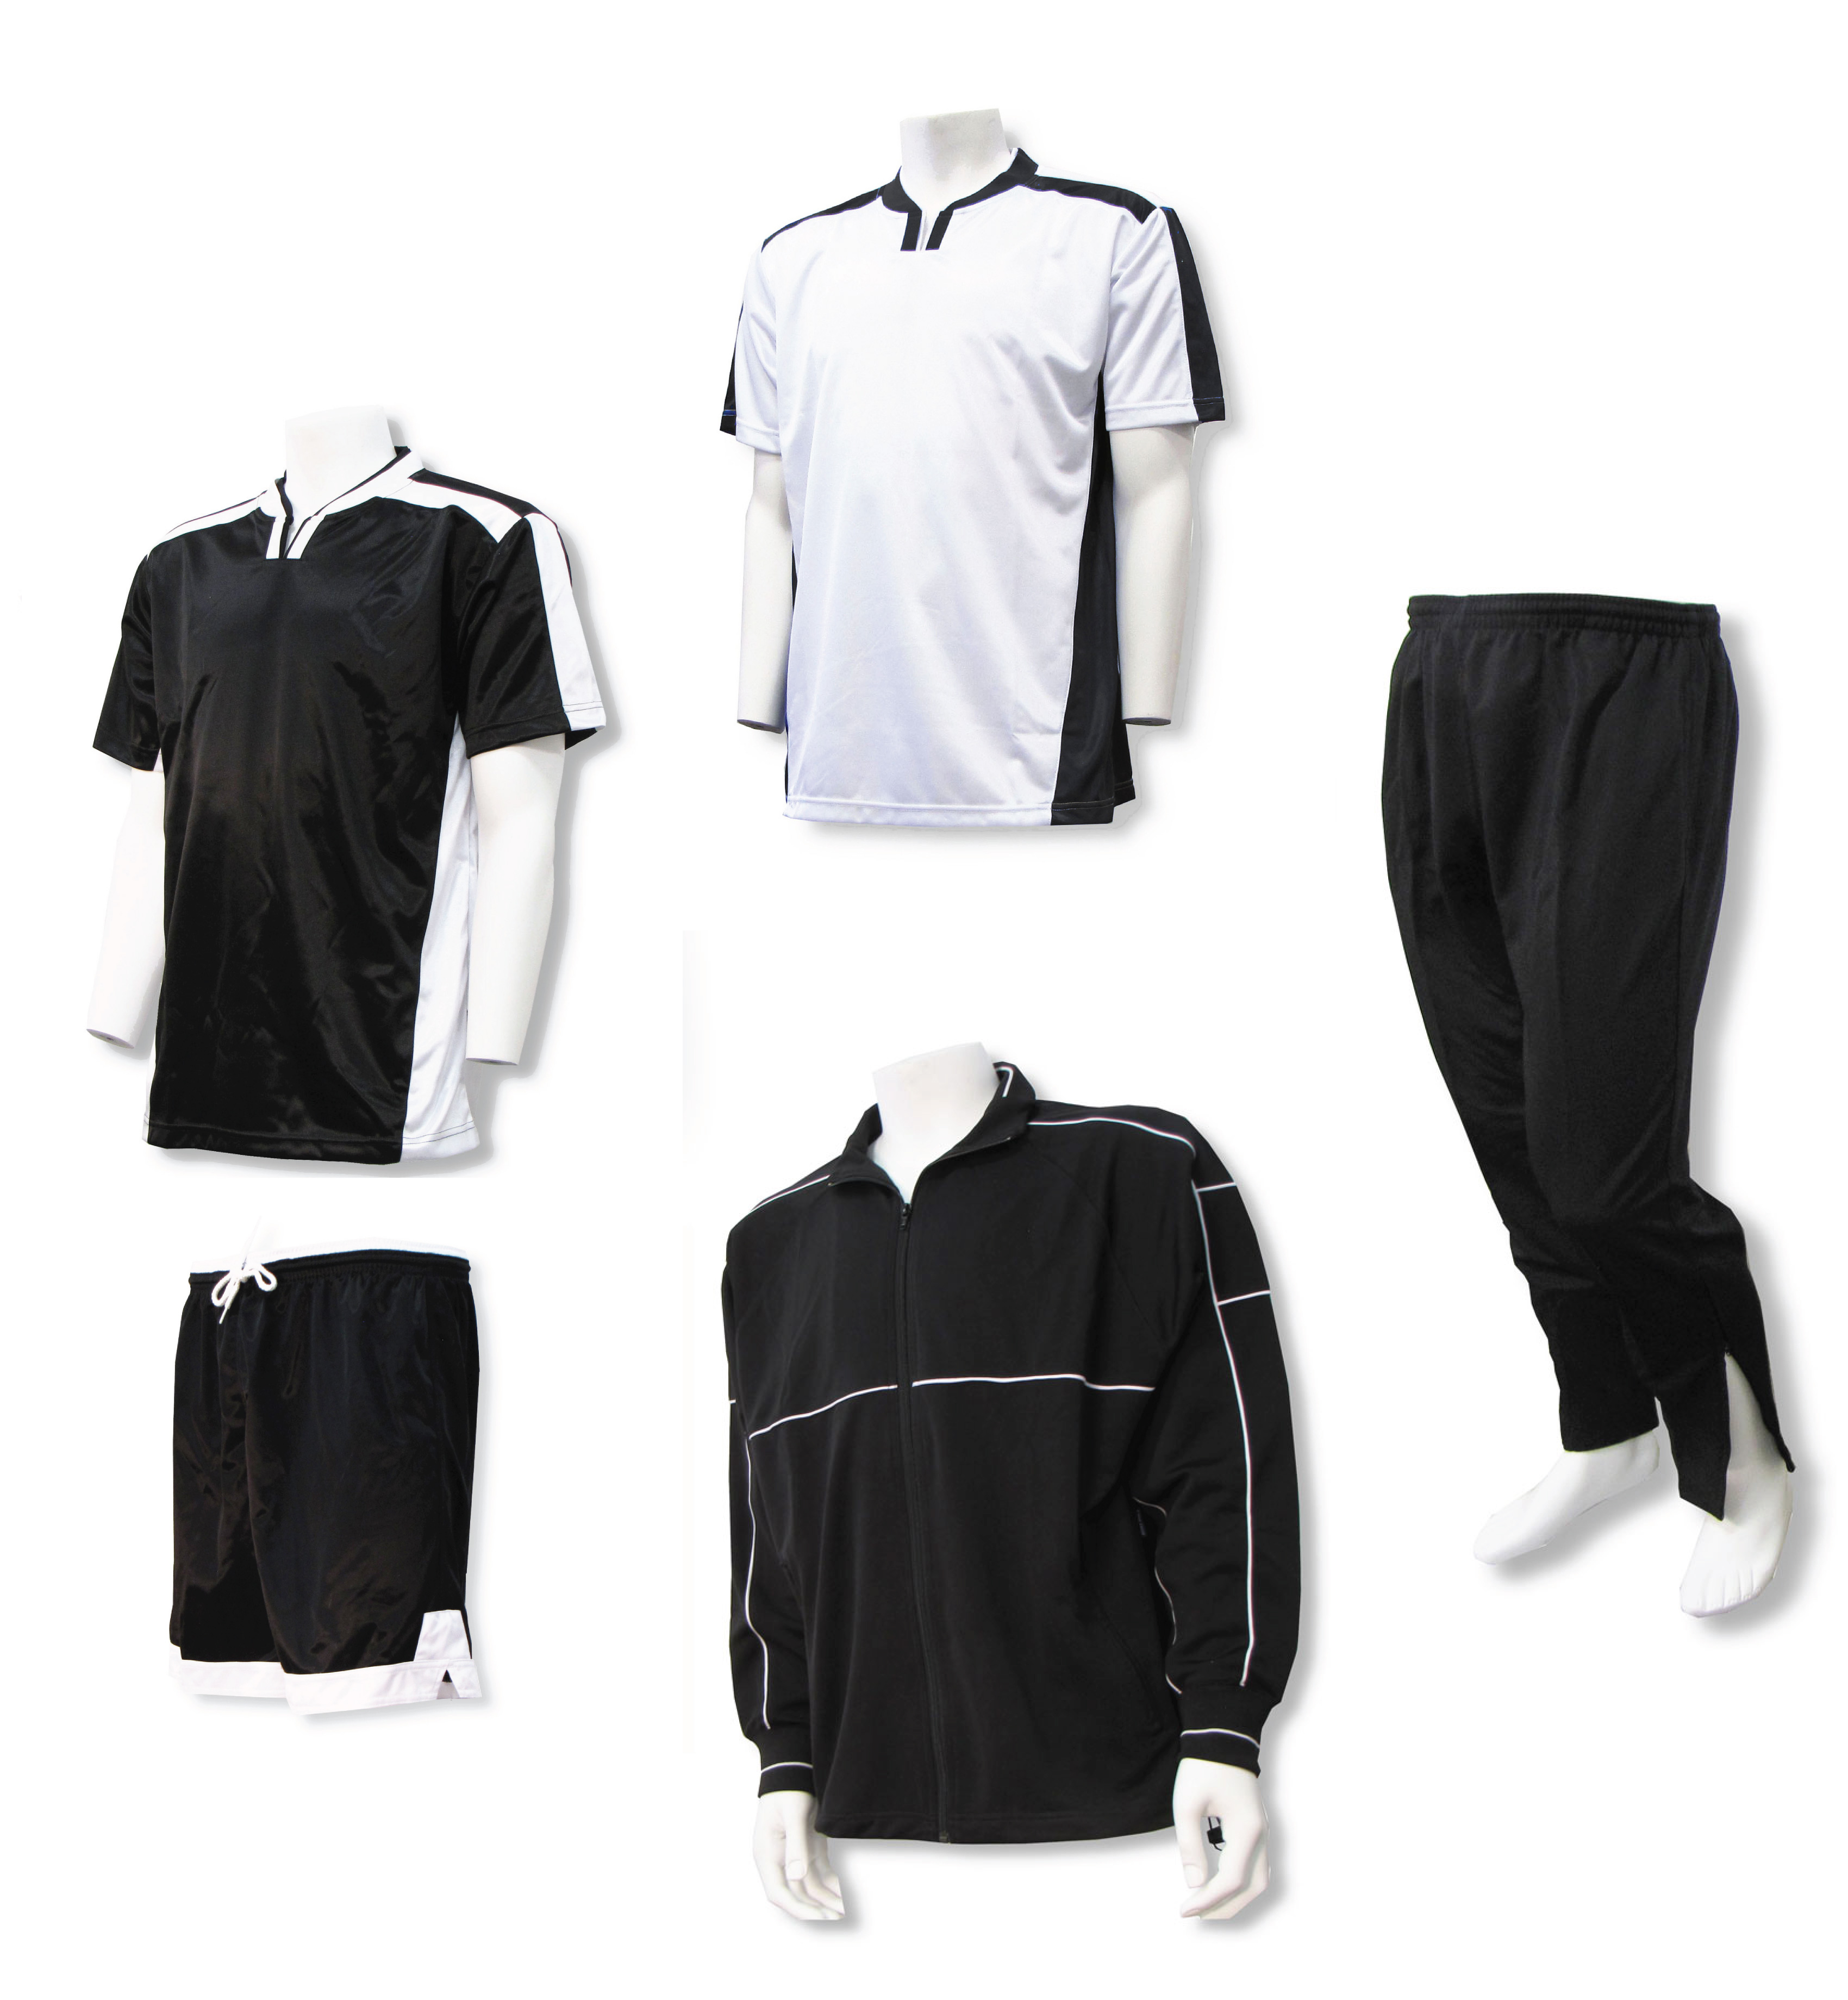 Winchester soccer team package with soccer uniform and warmups in black/white by Code Four Athletics